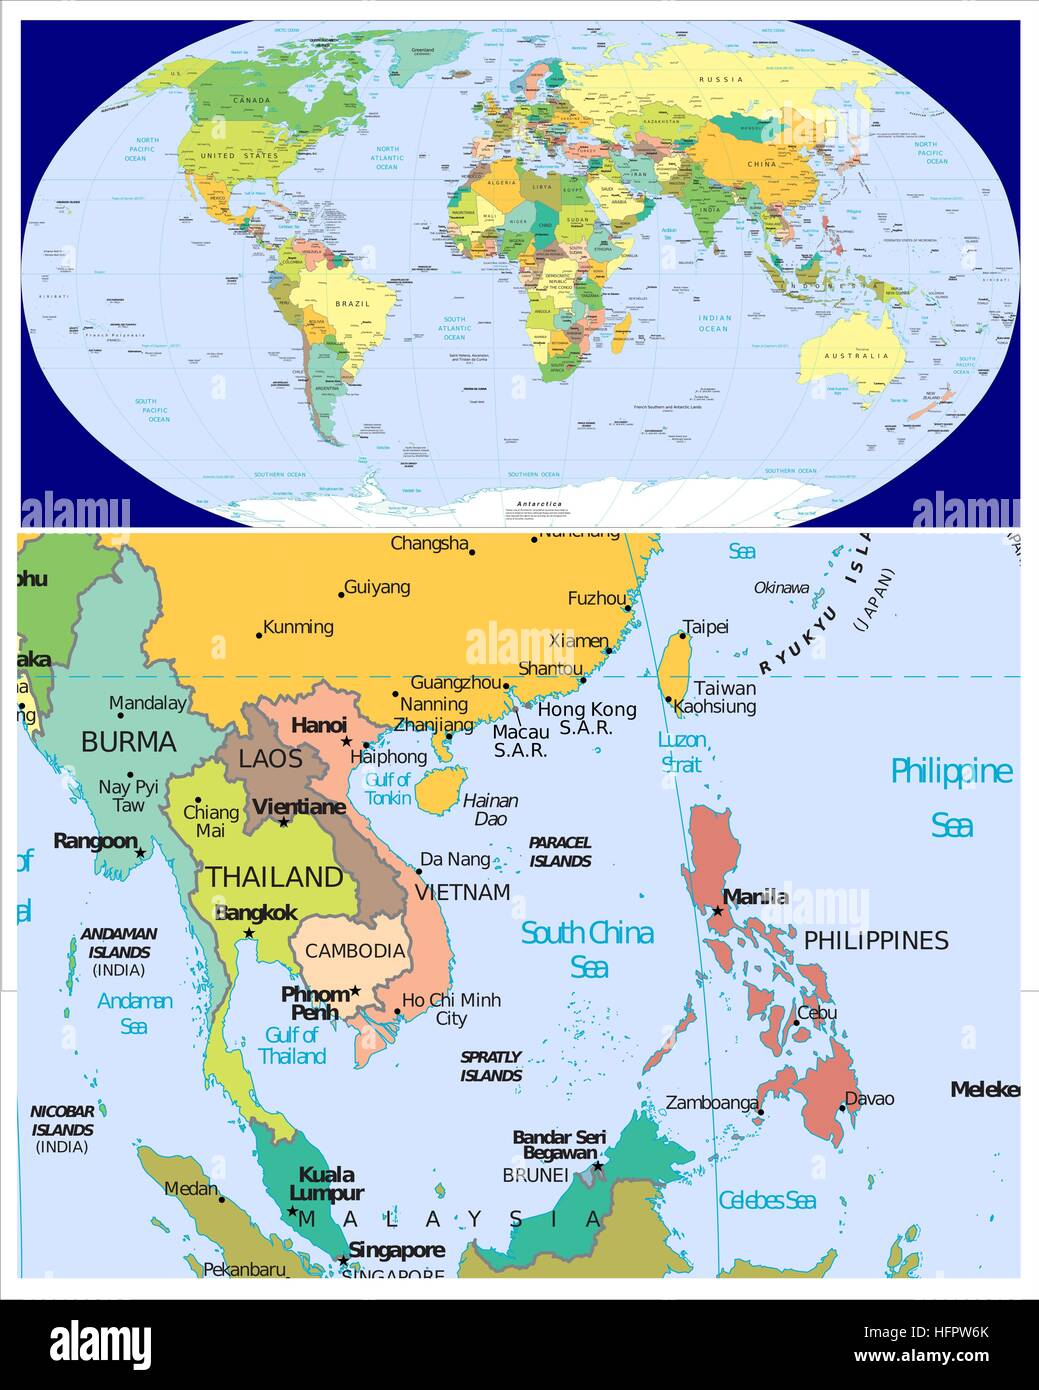 Map Of Thailand And Philippines Burma Laos Thailand Cambodia Vietnam Philippines and World Stock